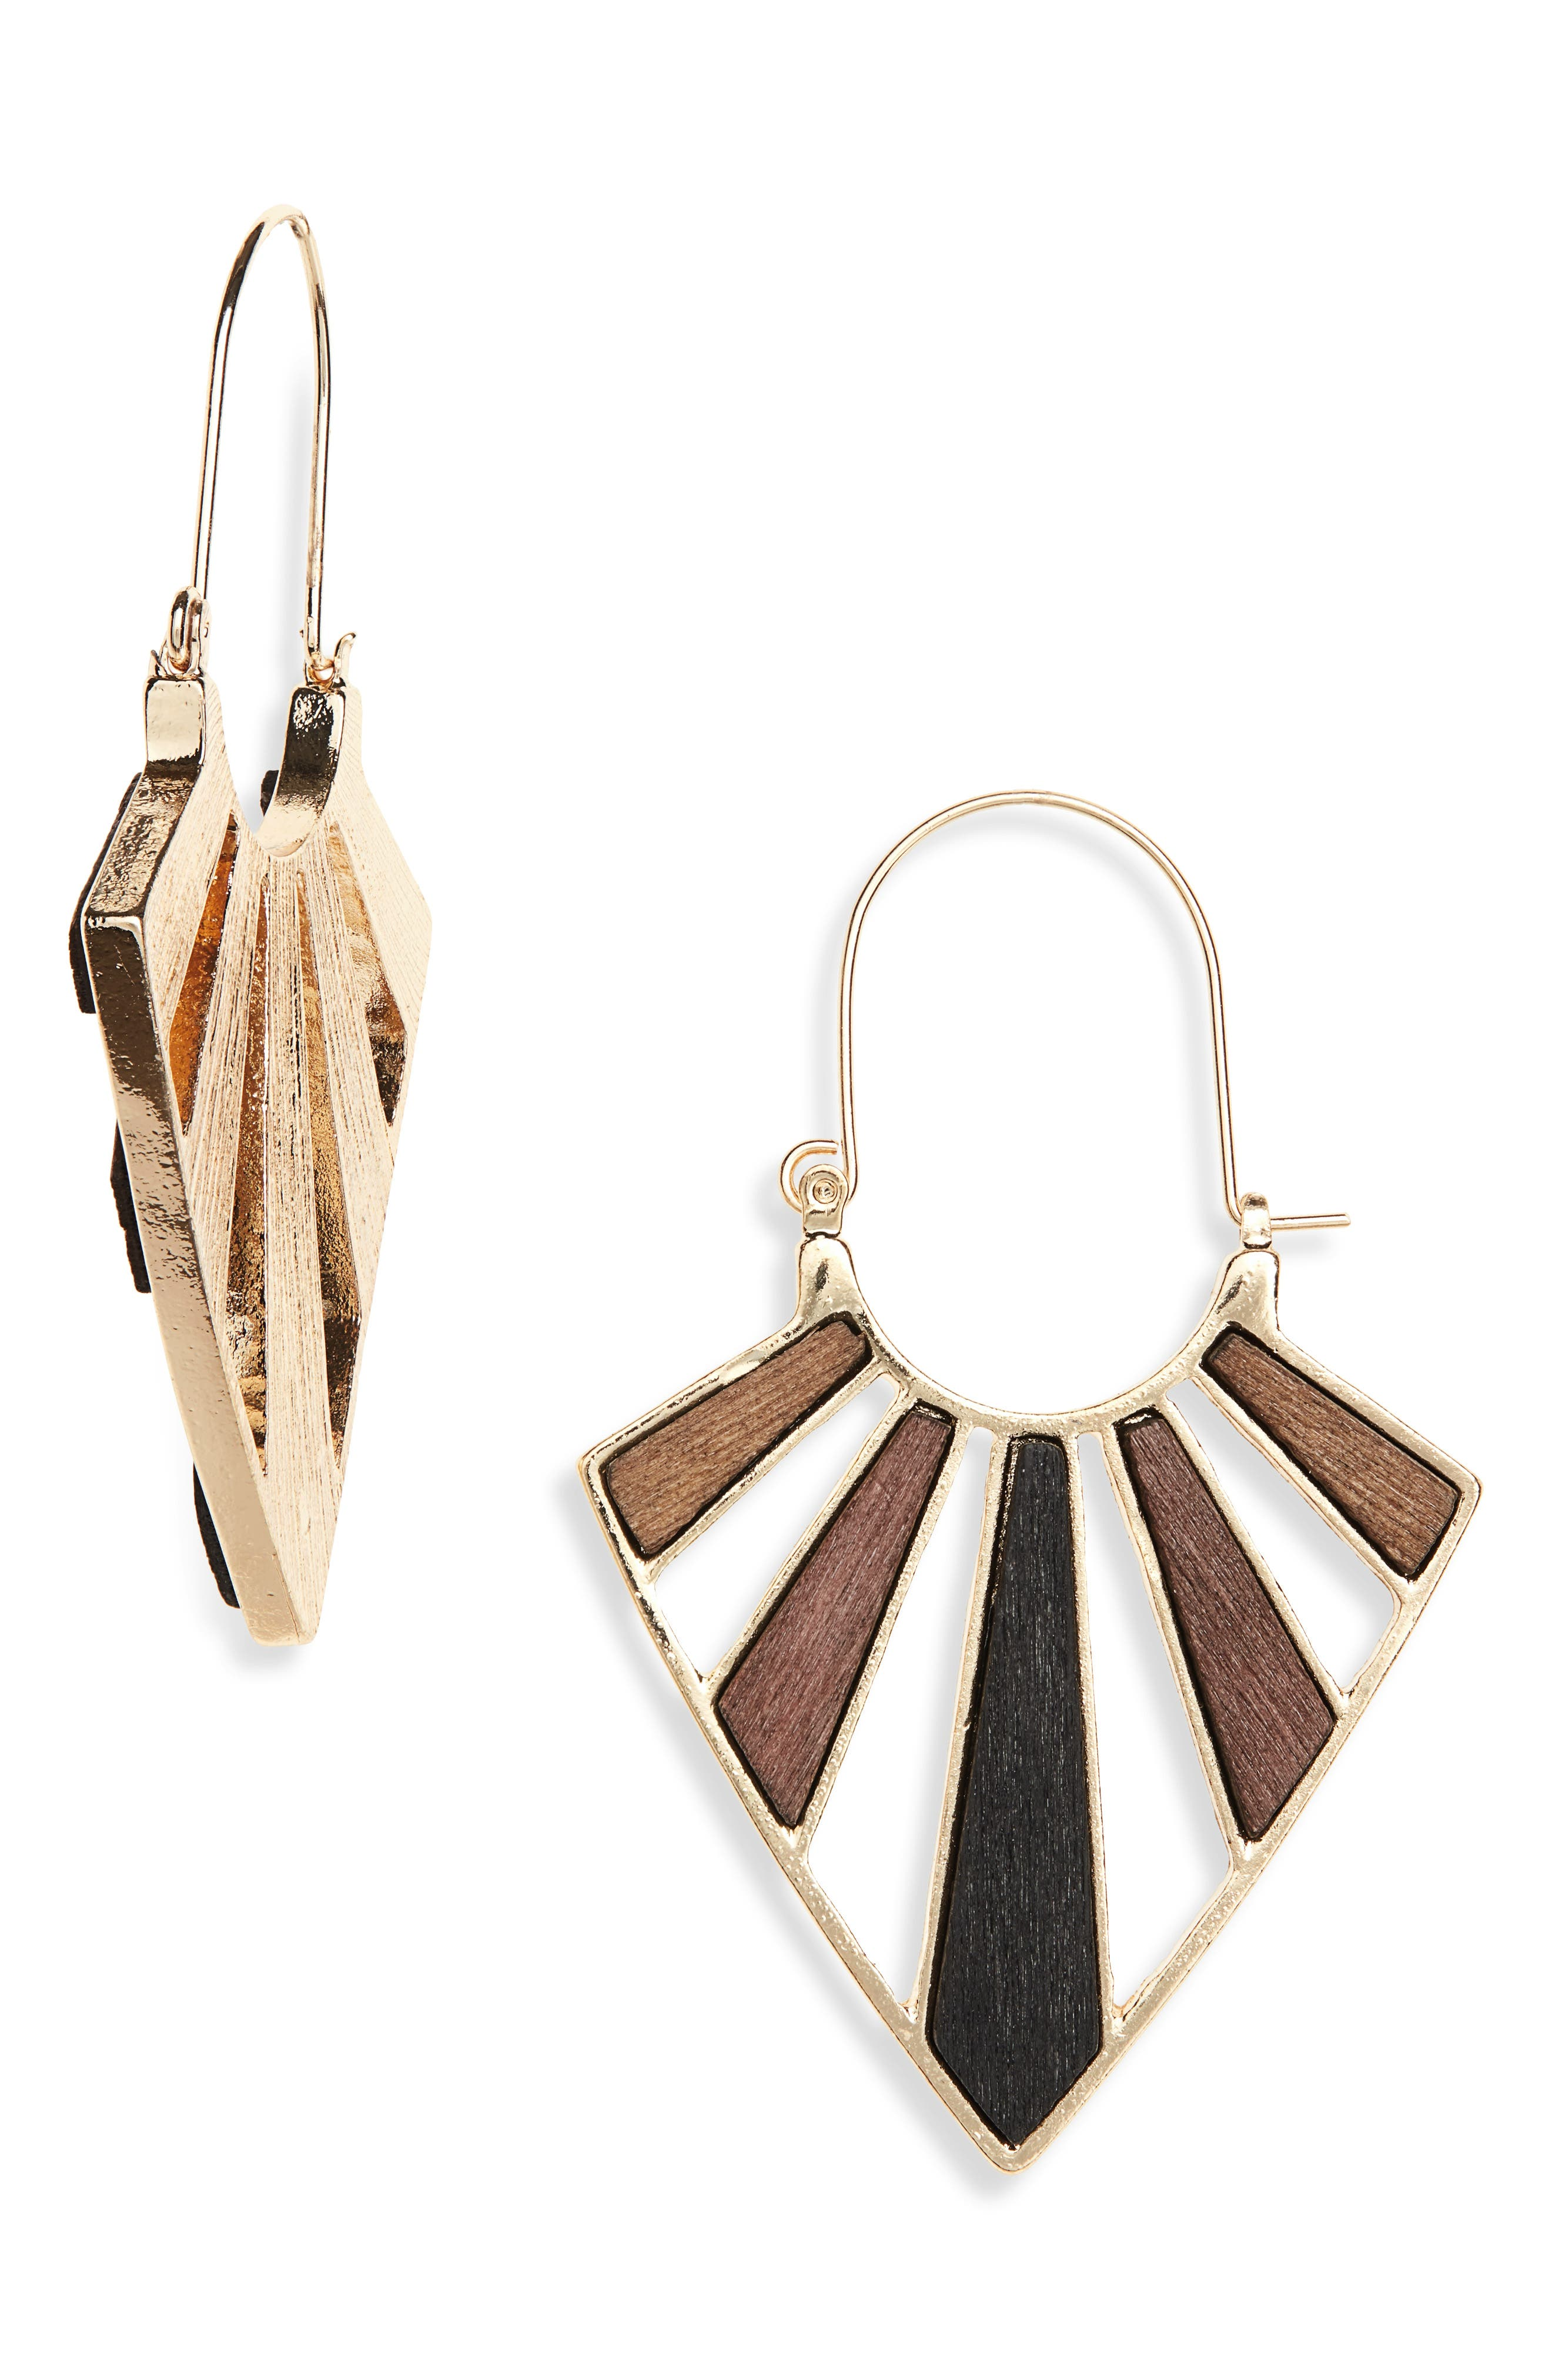 60s -70s Jewelry – Necklaces, Earrings, Rings, Bracelets Womens Bp. Wood  Metal Drop Earrings $29.00 AT vintagedancer.com